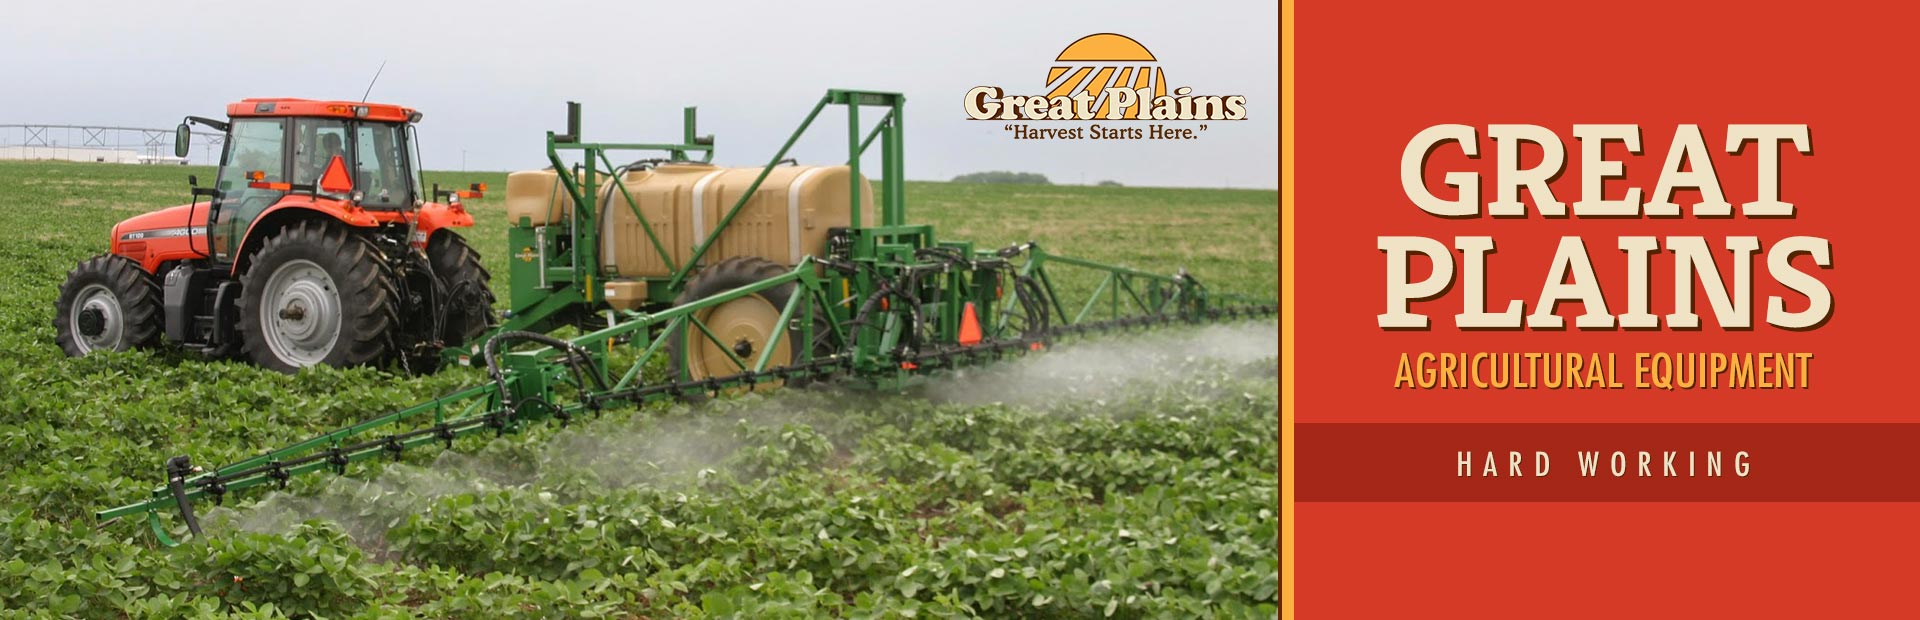 Great Plains Agricultural Equipment: Click here to view the models.